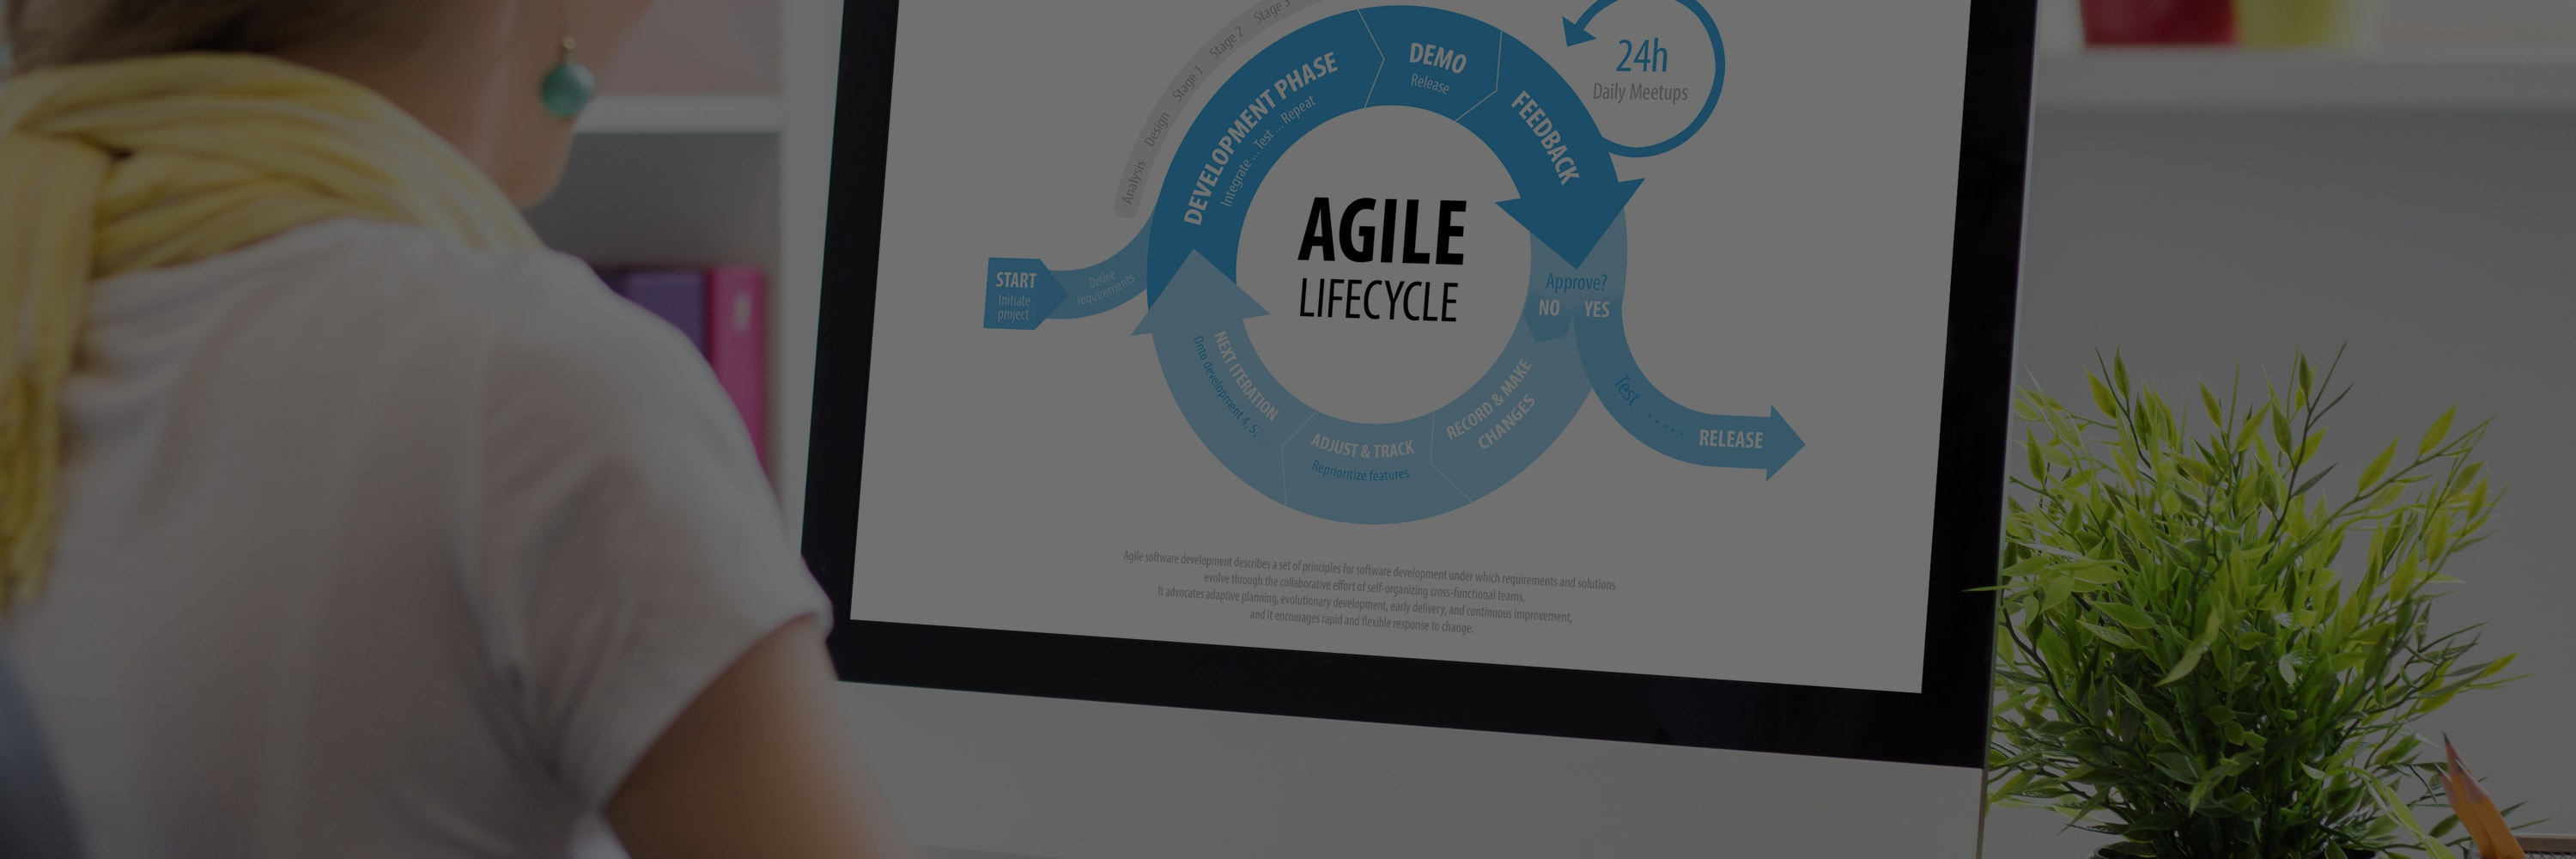 naem-webinar-2019-how-agile-leads-to-win-win-software-implementation-1800x600